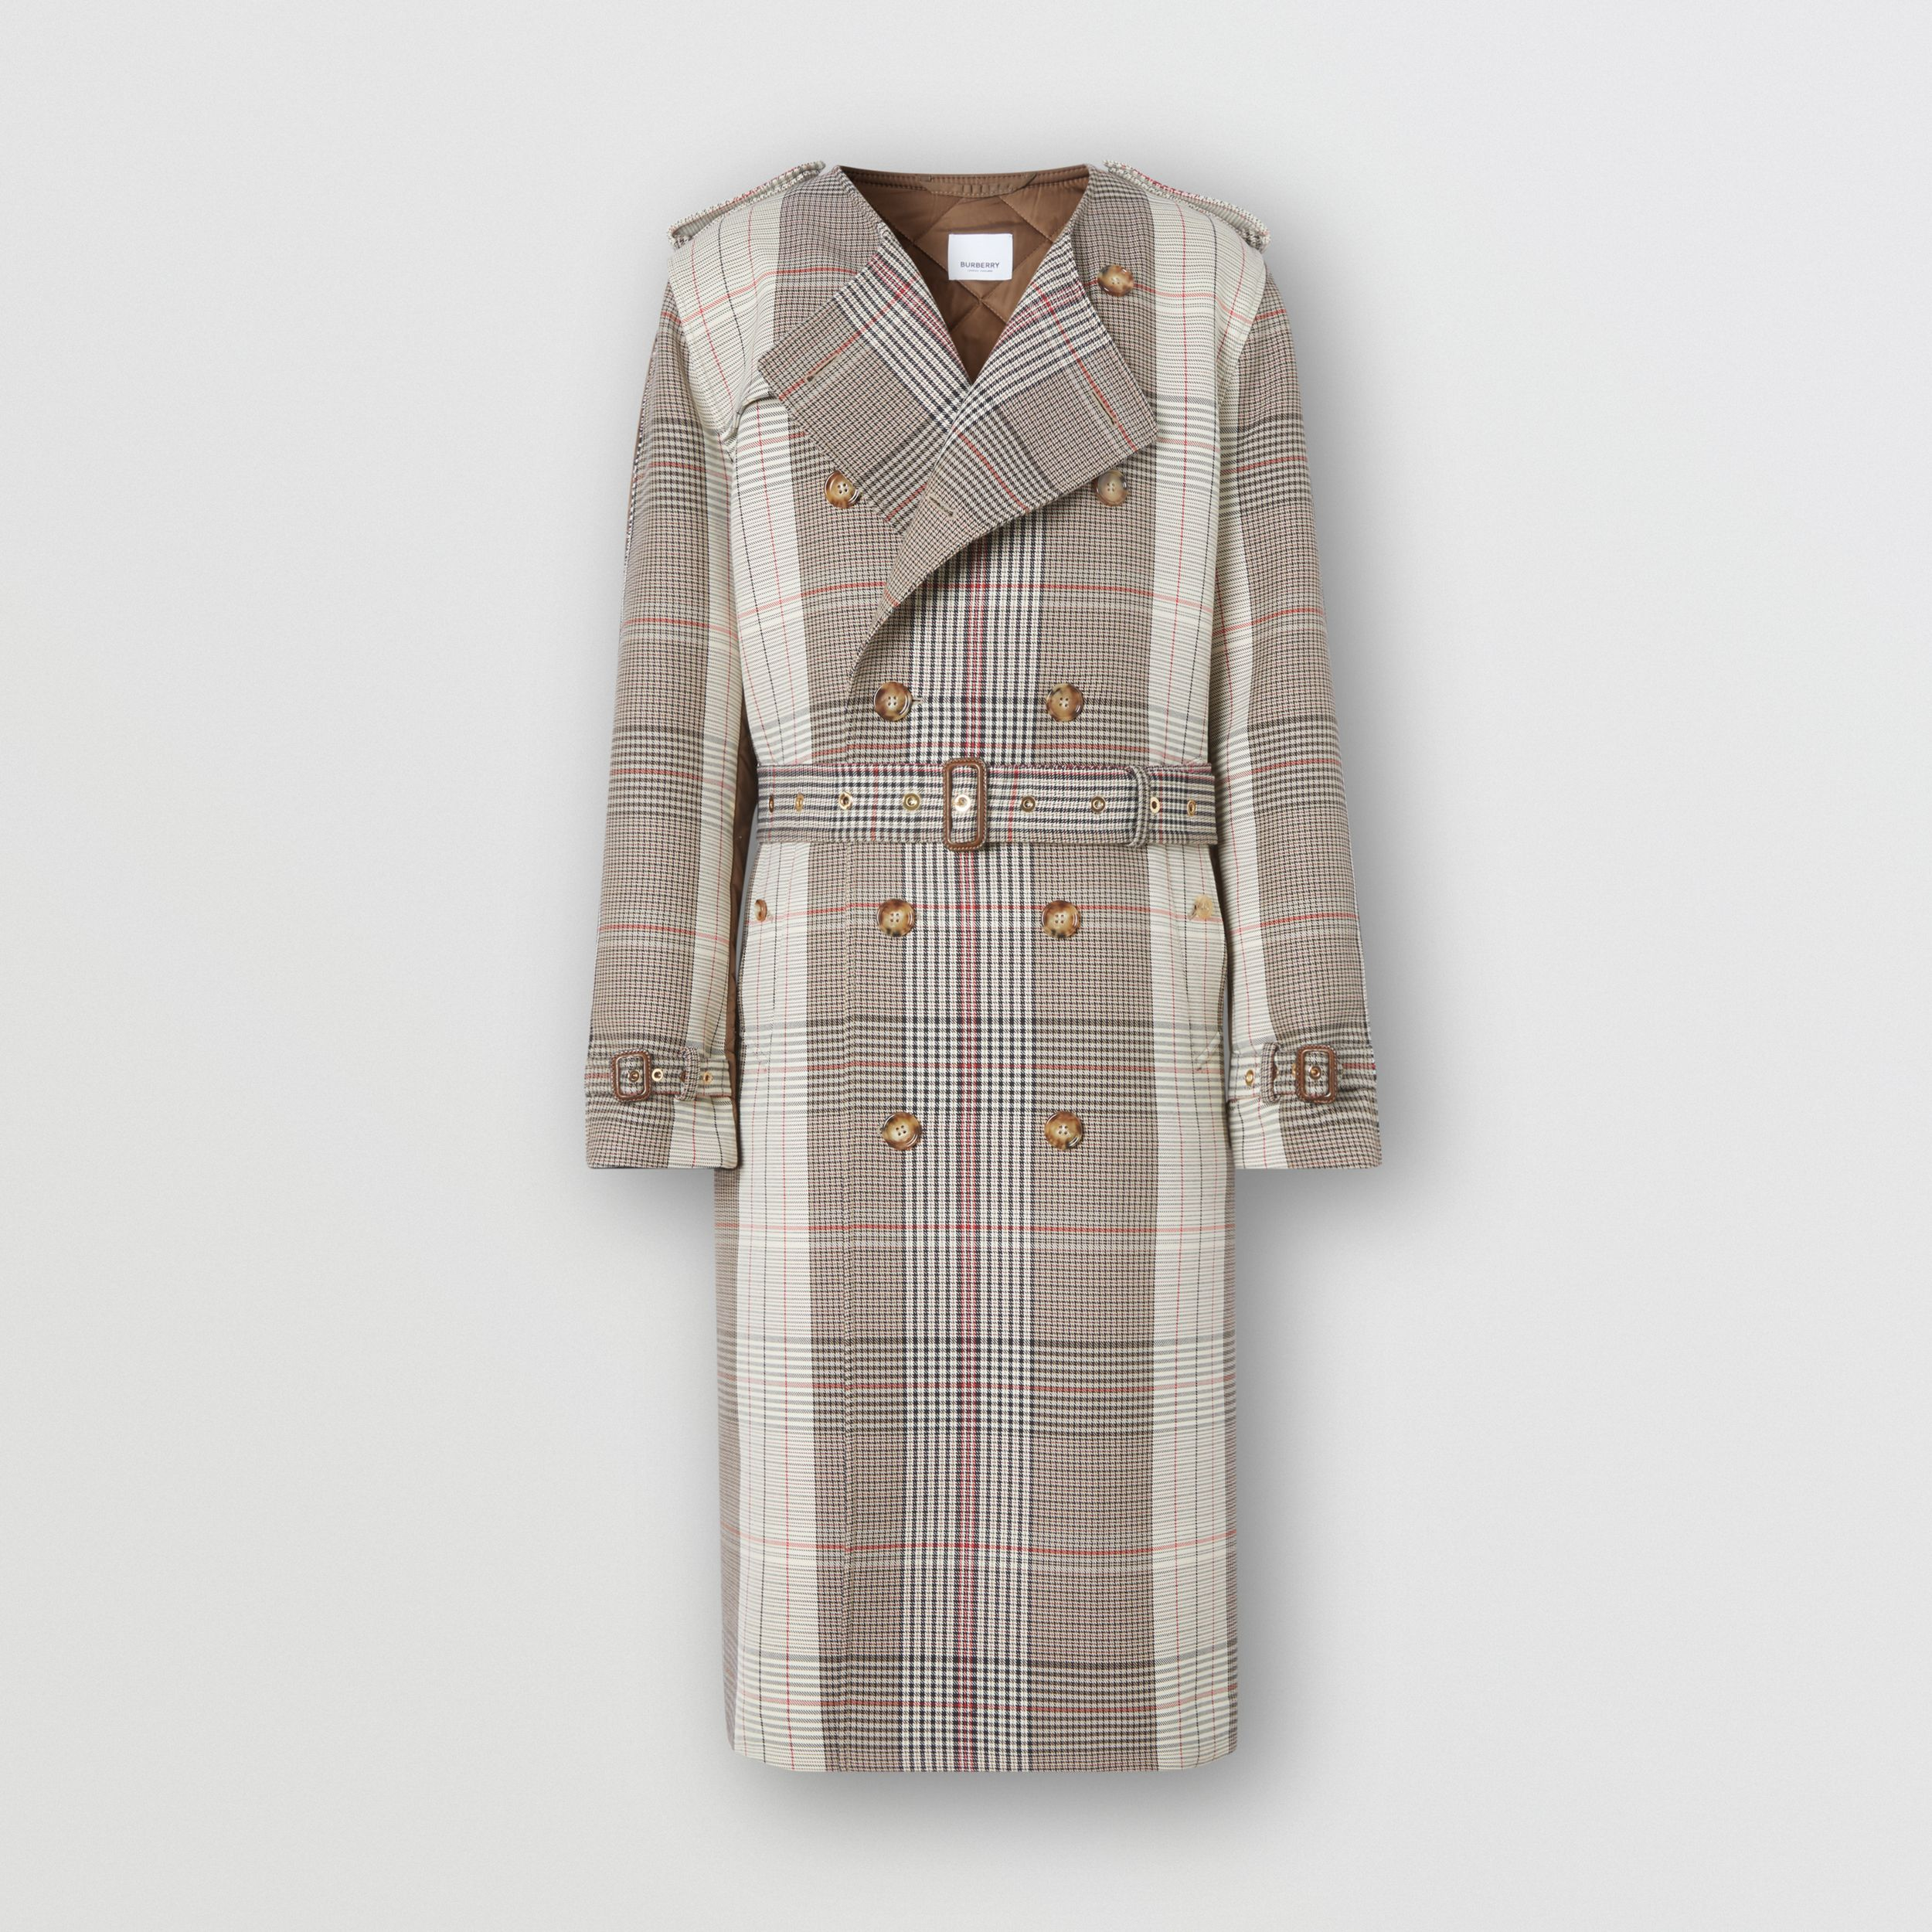 Quilted Panel Check Wool Cotton Trench Coat in Beige - Men | Burberry - 4